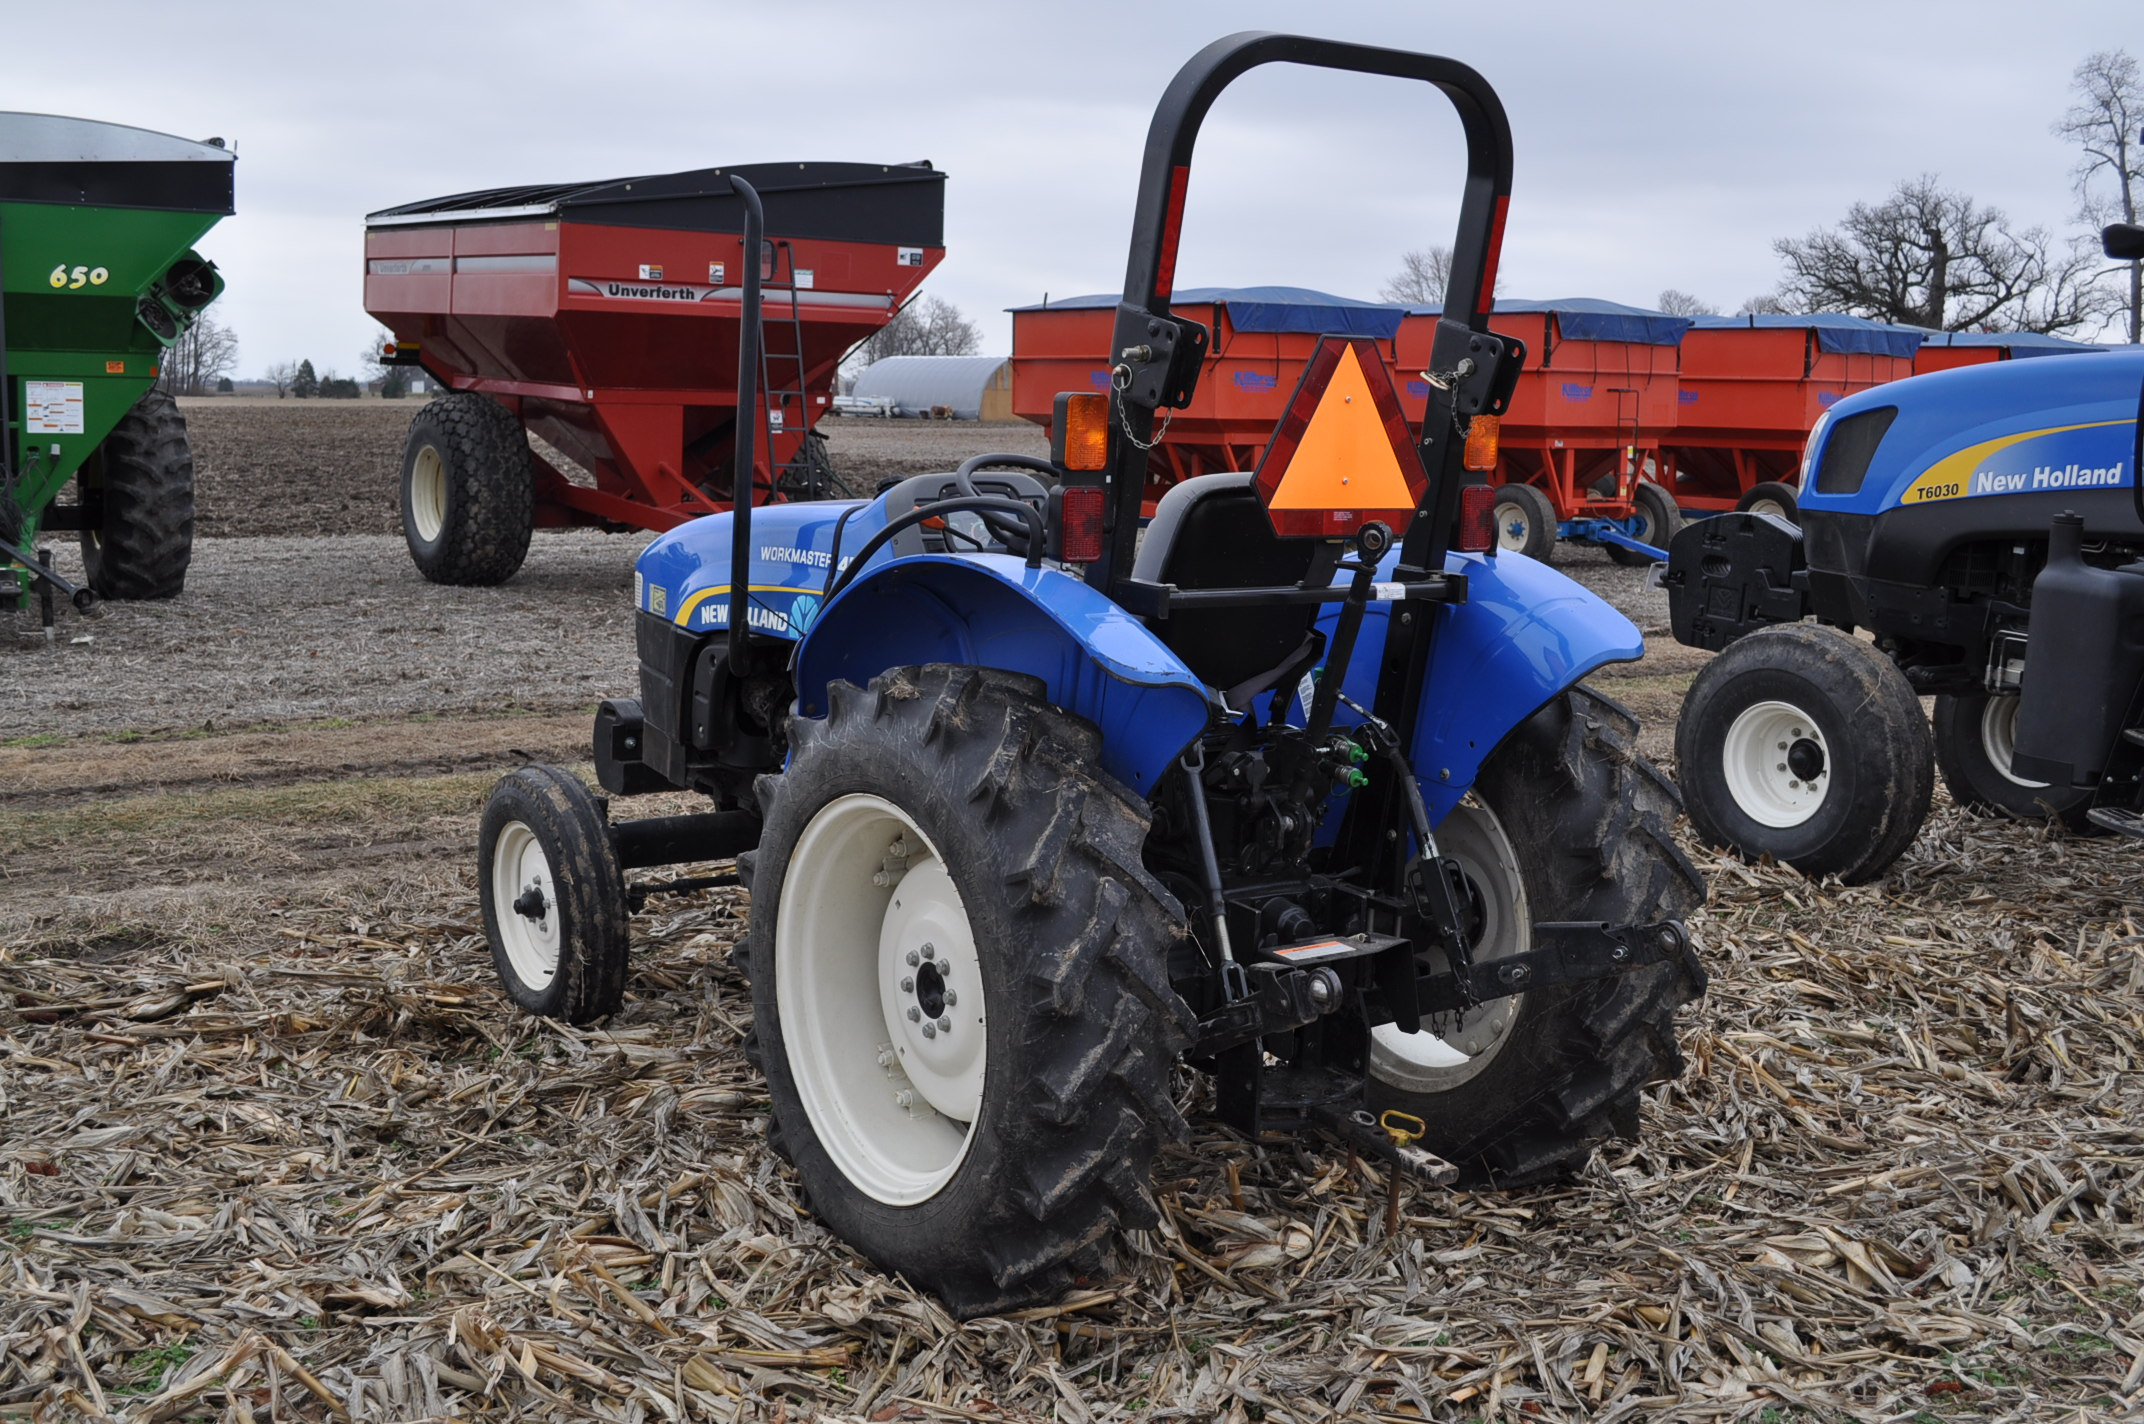 New Holland Workmaster 45 tractor, front wts, 12.4/11-28 rear, 6.00-16 front, shuttle shift, diesel, - Image 2 of 14